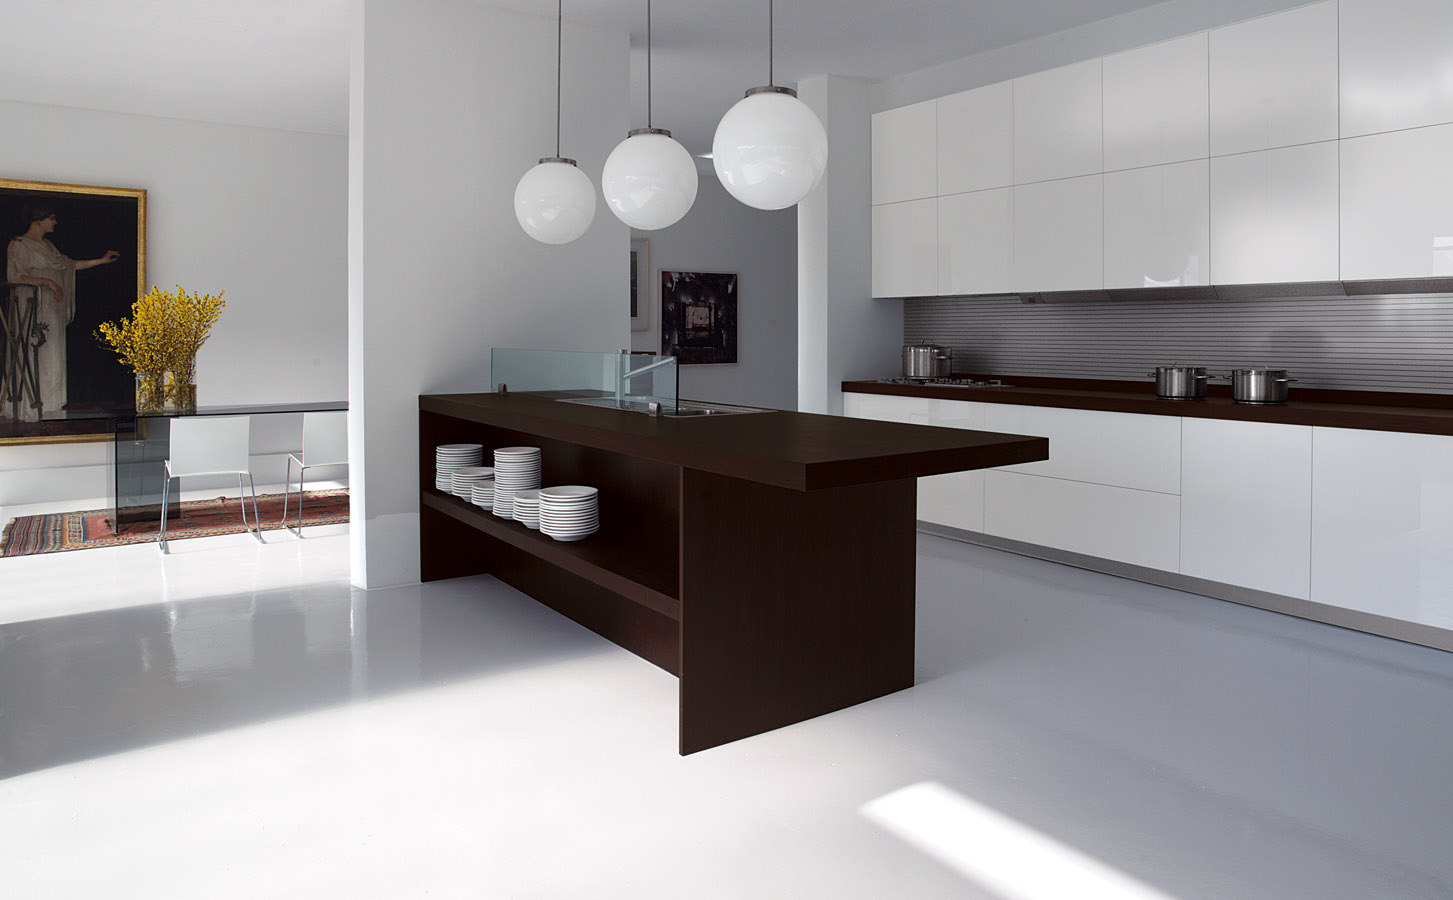 Simple contemporary kitchen interior design one - New ideas contemporary kitchen design ...